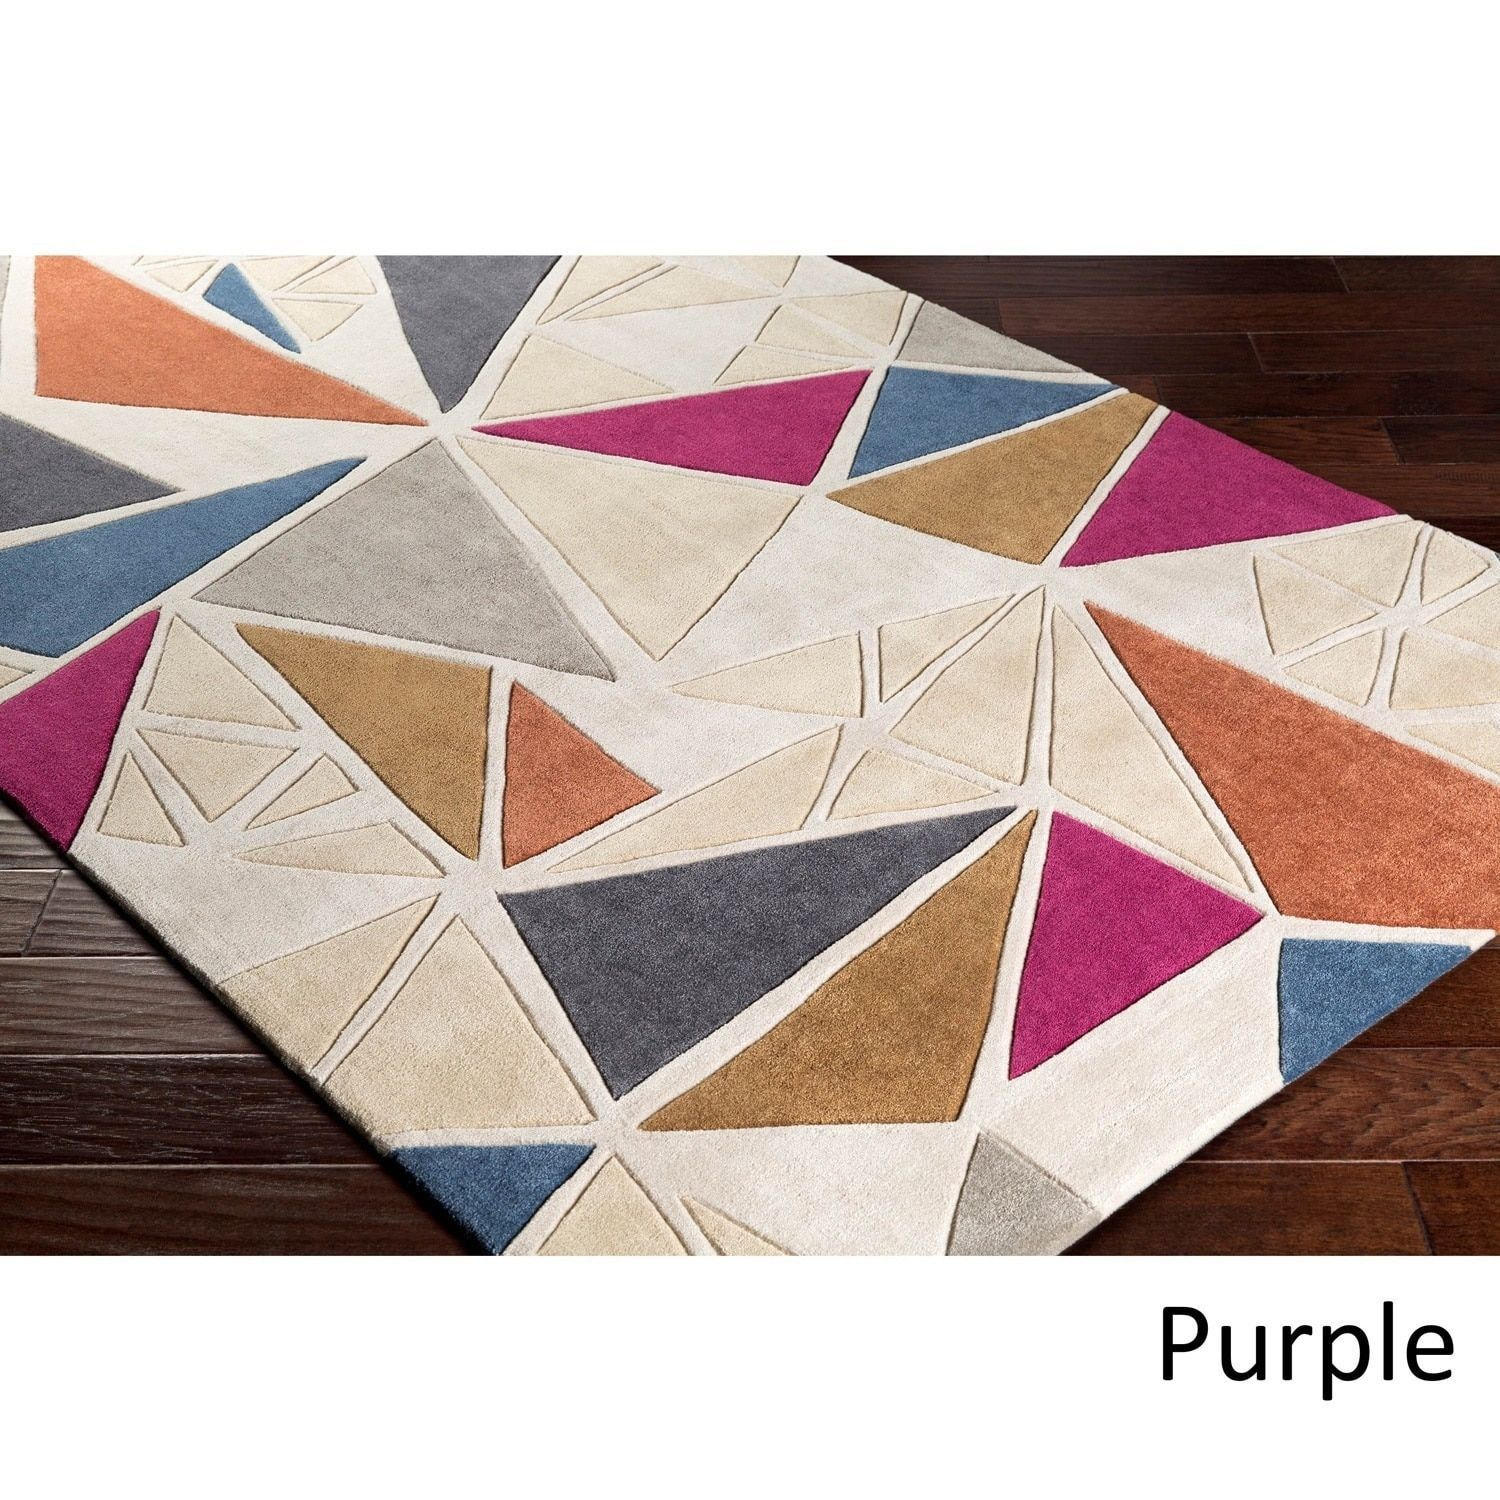 Hand-tufted Grey/ Multi Area Rug (9' x 13') (Purple-(9' x 13')) (Polyester, Abstract)